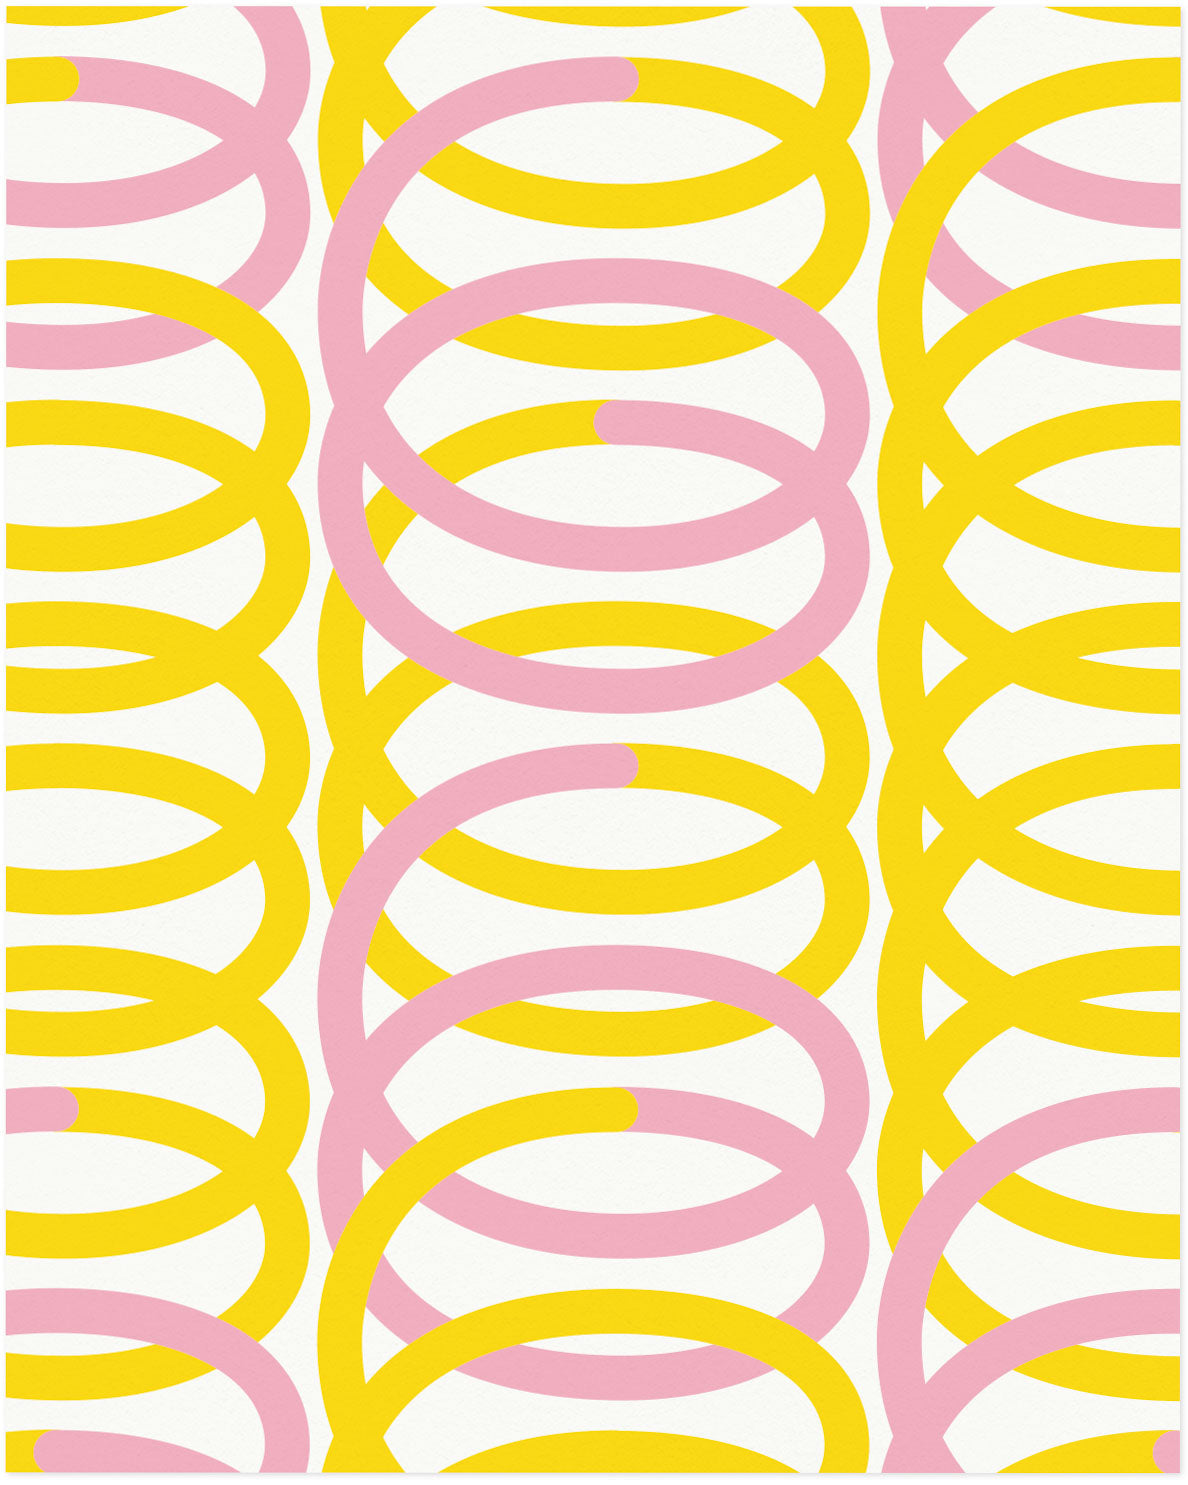 """Spiro"" pink and yellow graphic geometric spiral composition archival giclée art print. Made in USA by My Darlin' @mydarlin_bk"